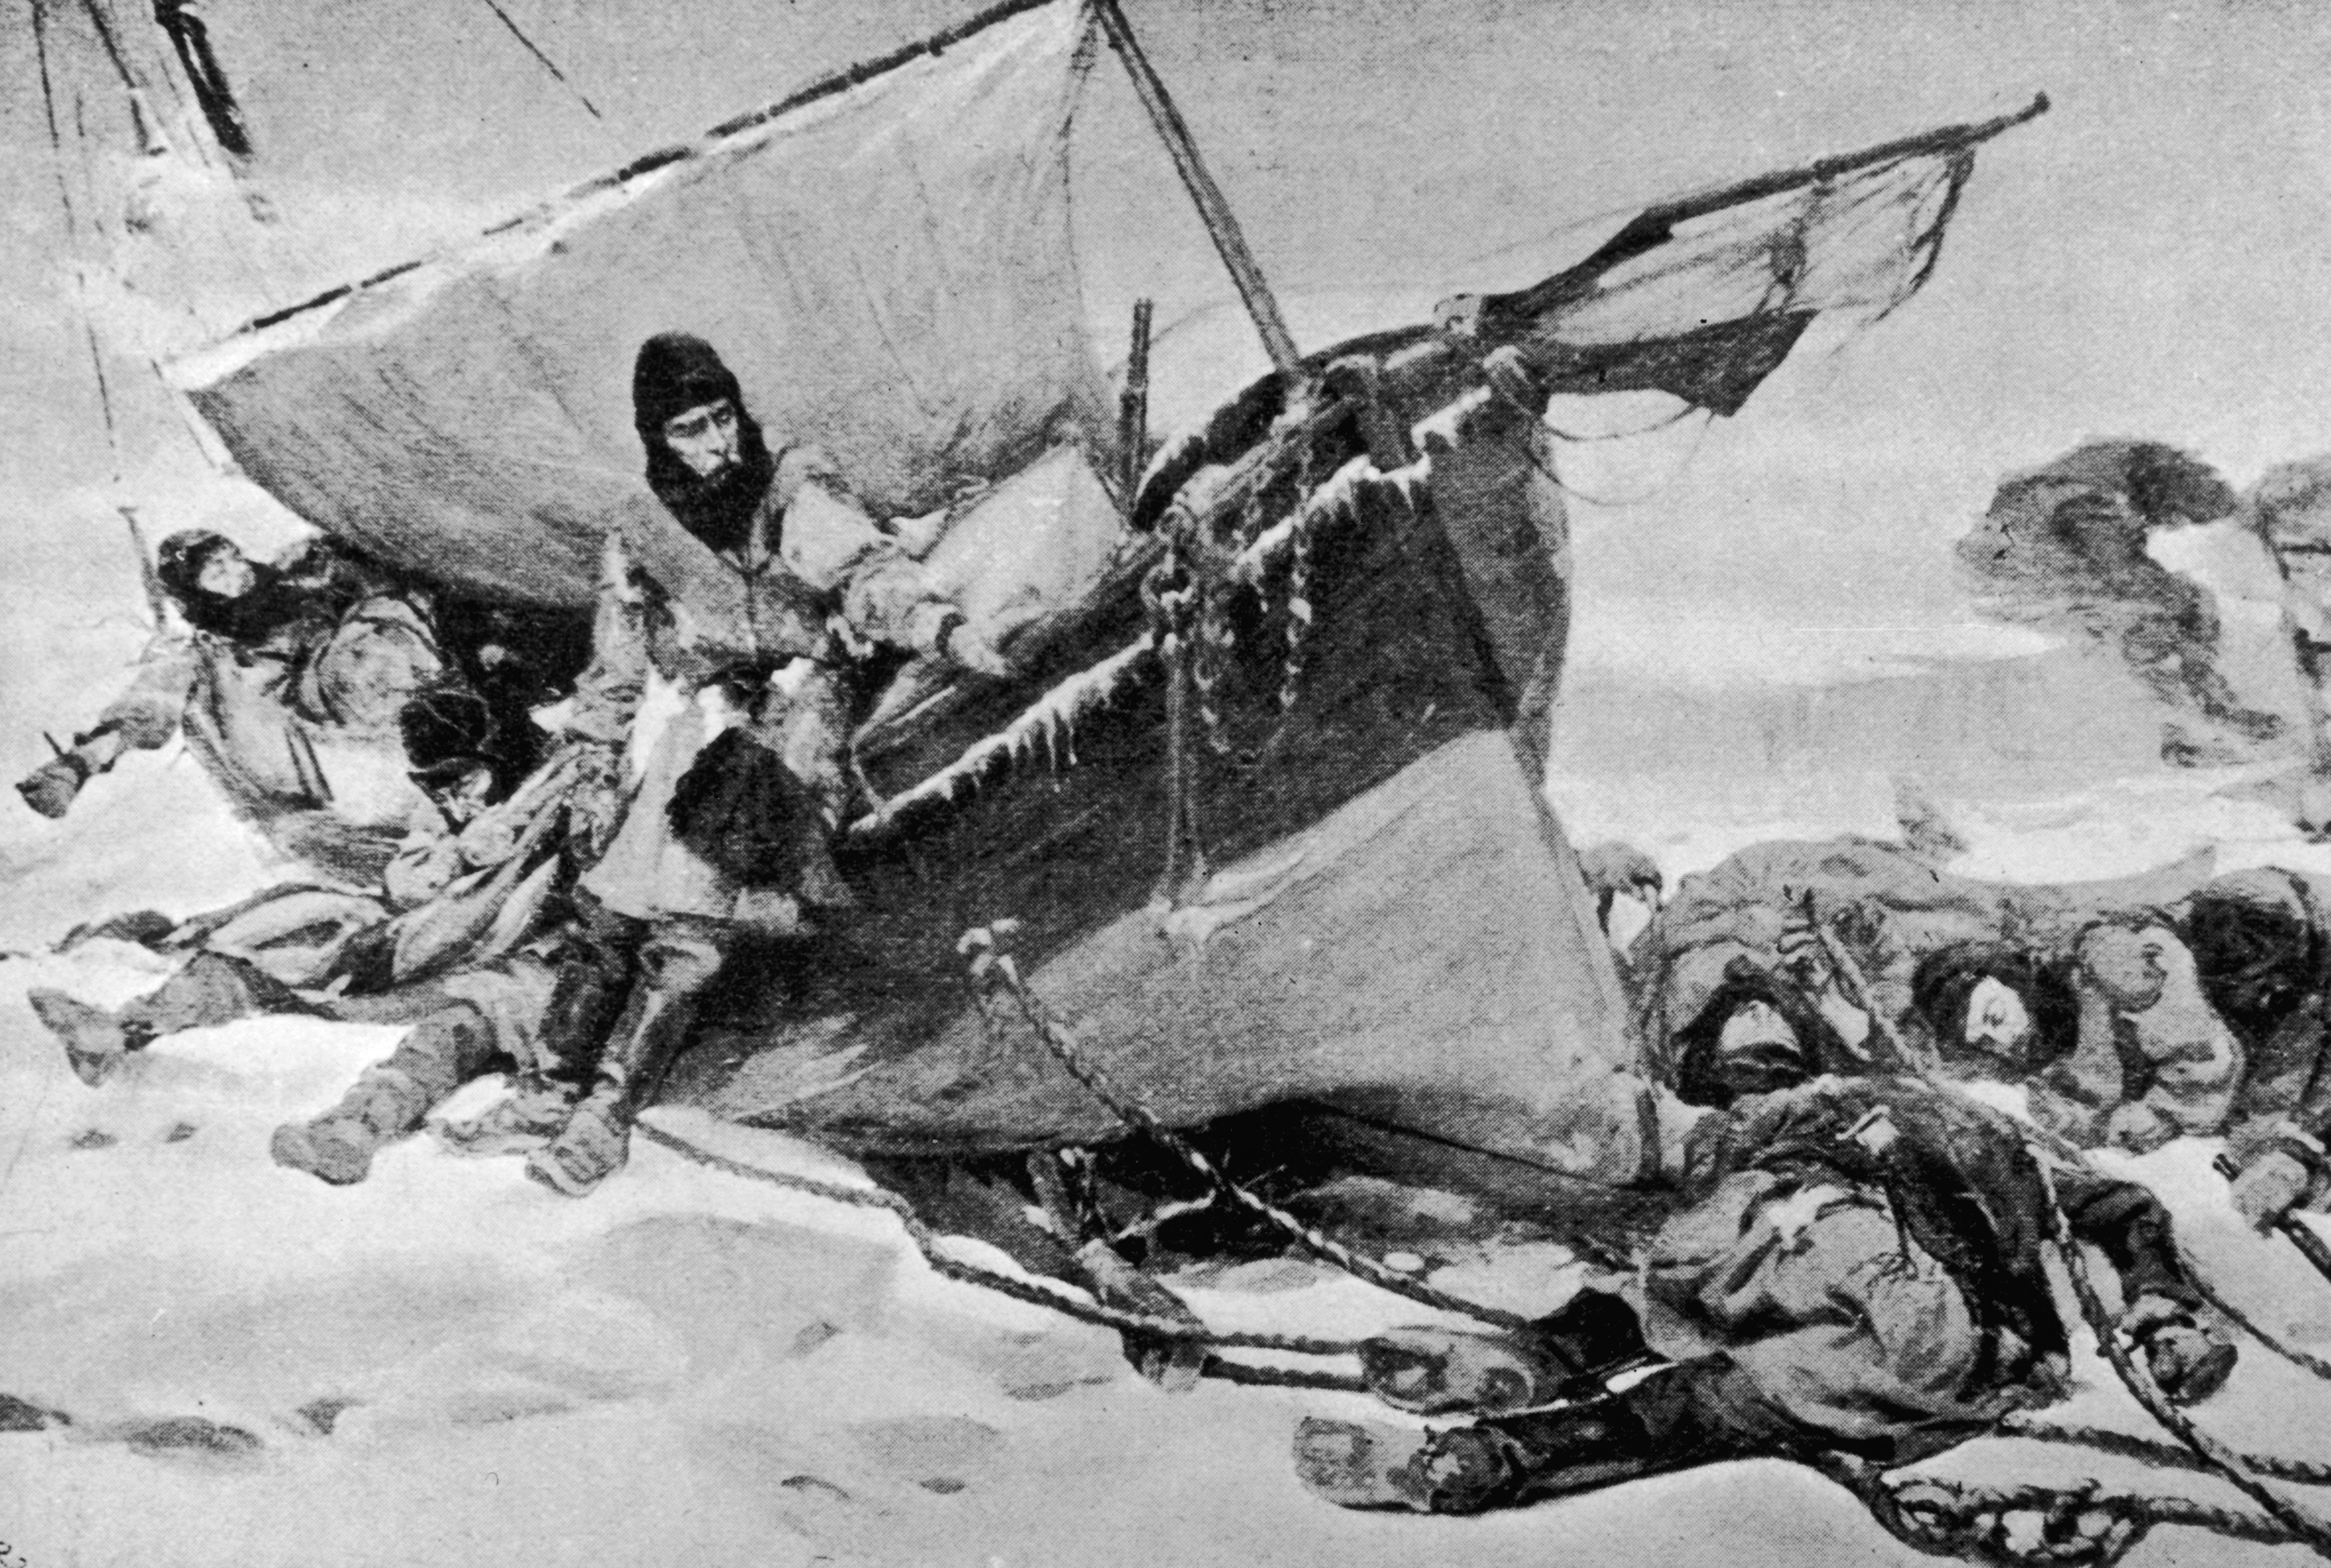 19 Facts About the Franklin Expedition, the Real-Life